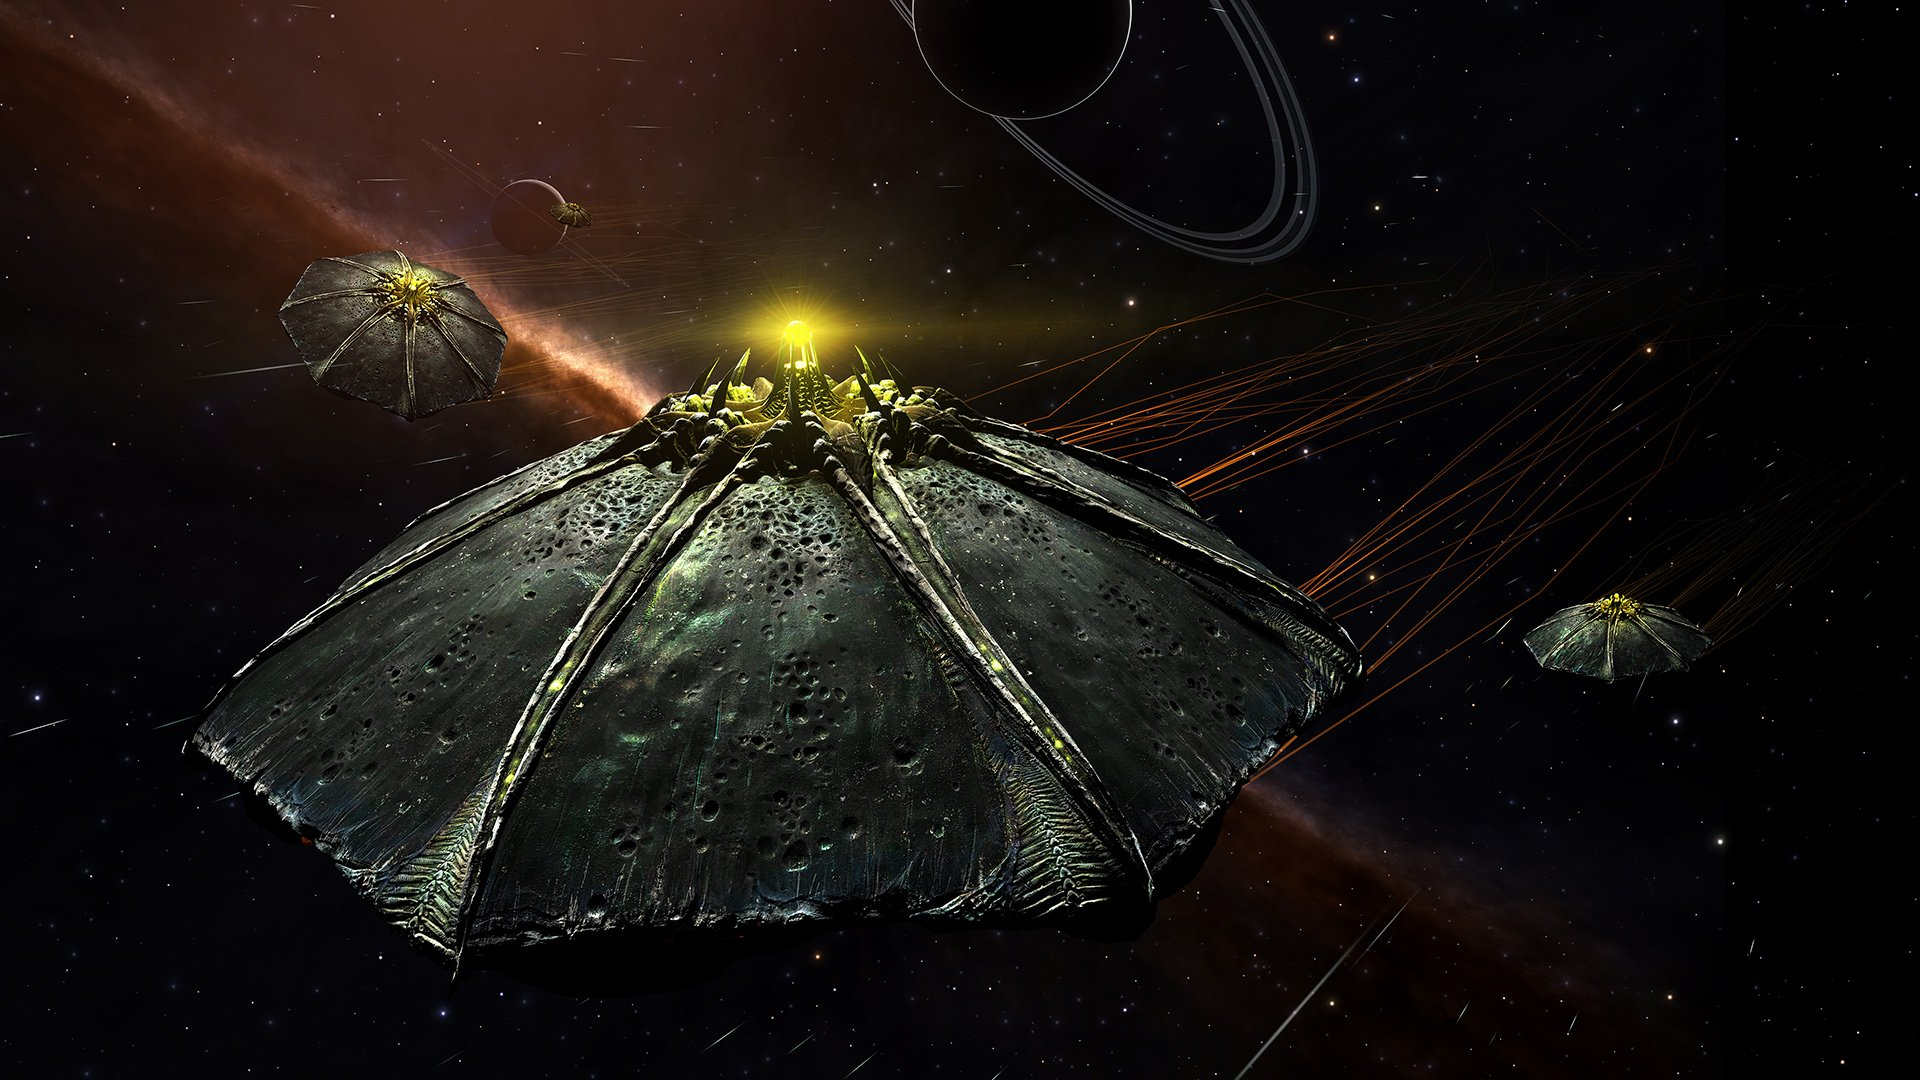 The new season of Elite Dangerous starts this month with an open beta screenshot